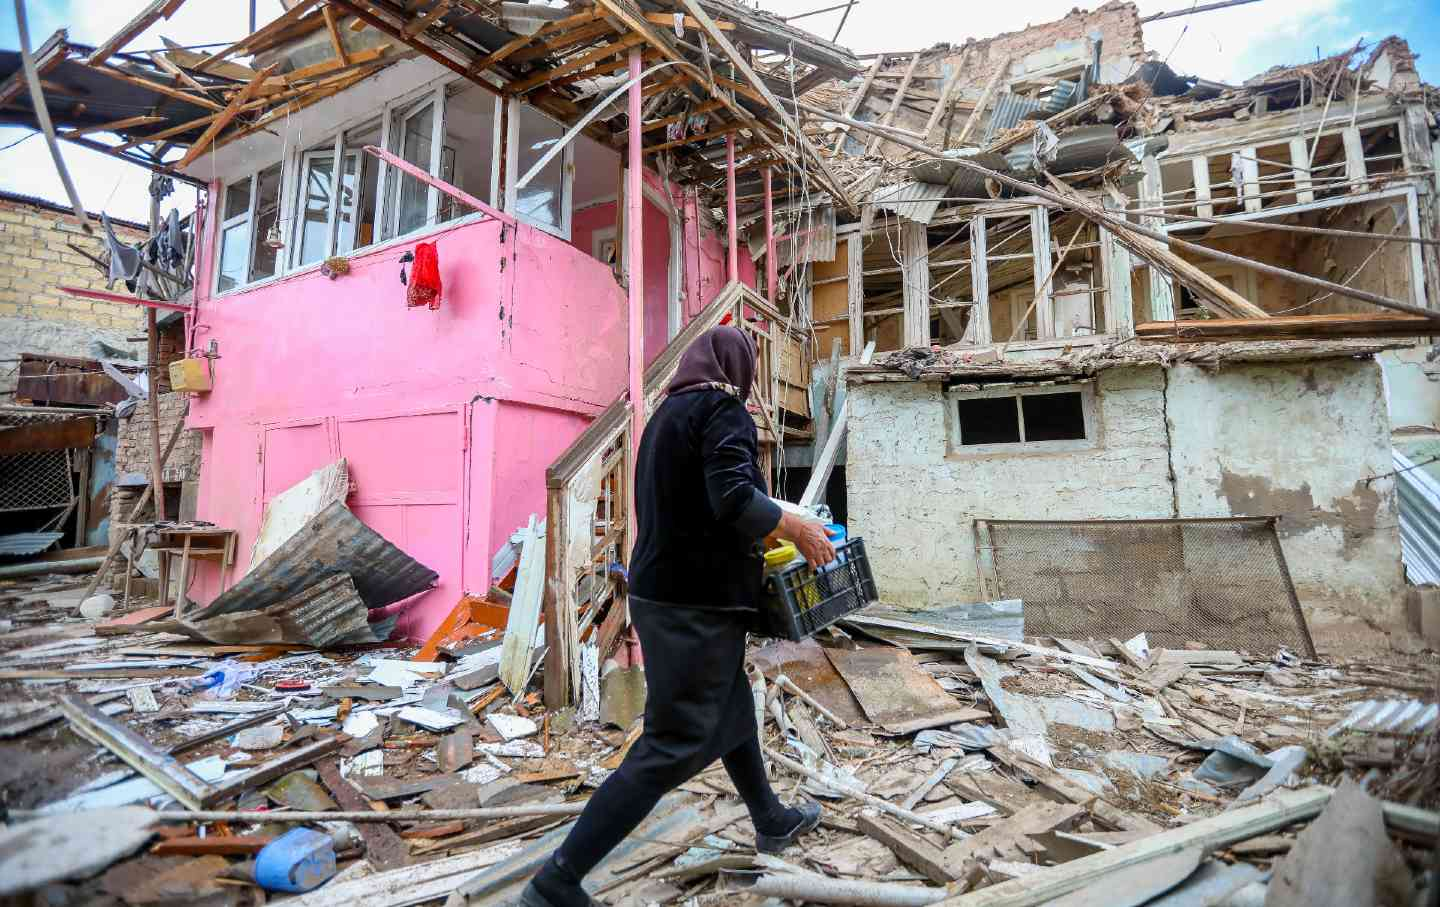 A woman walks past a severely damaged house surrounded by debris